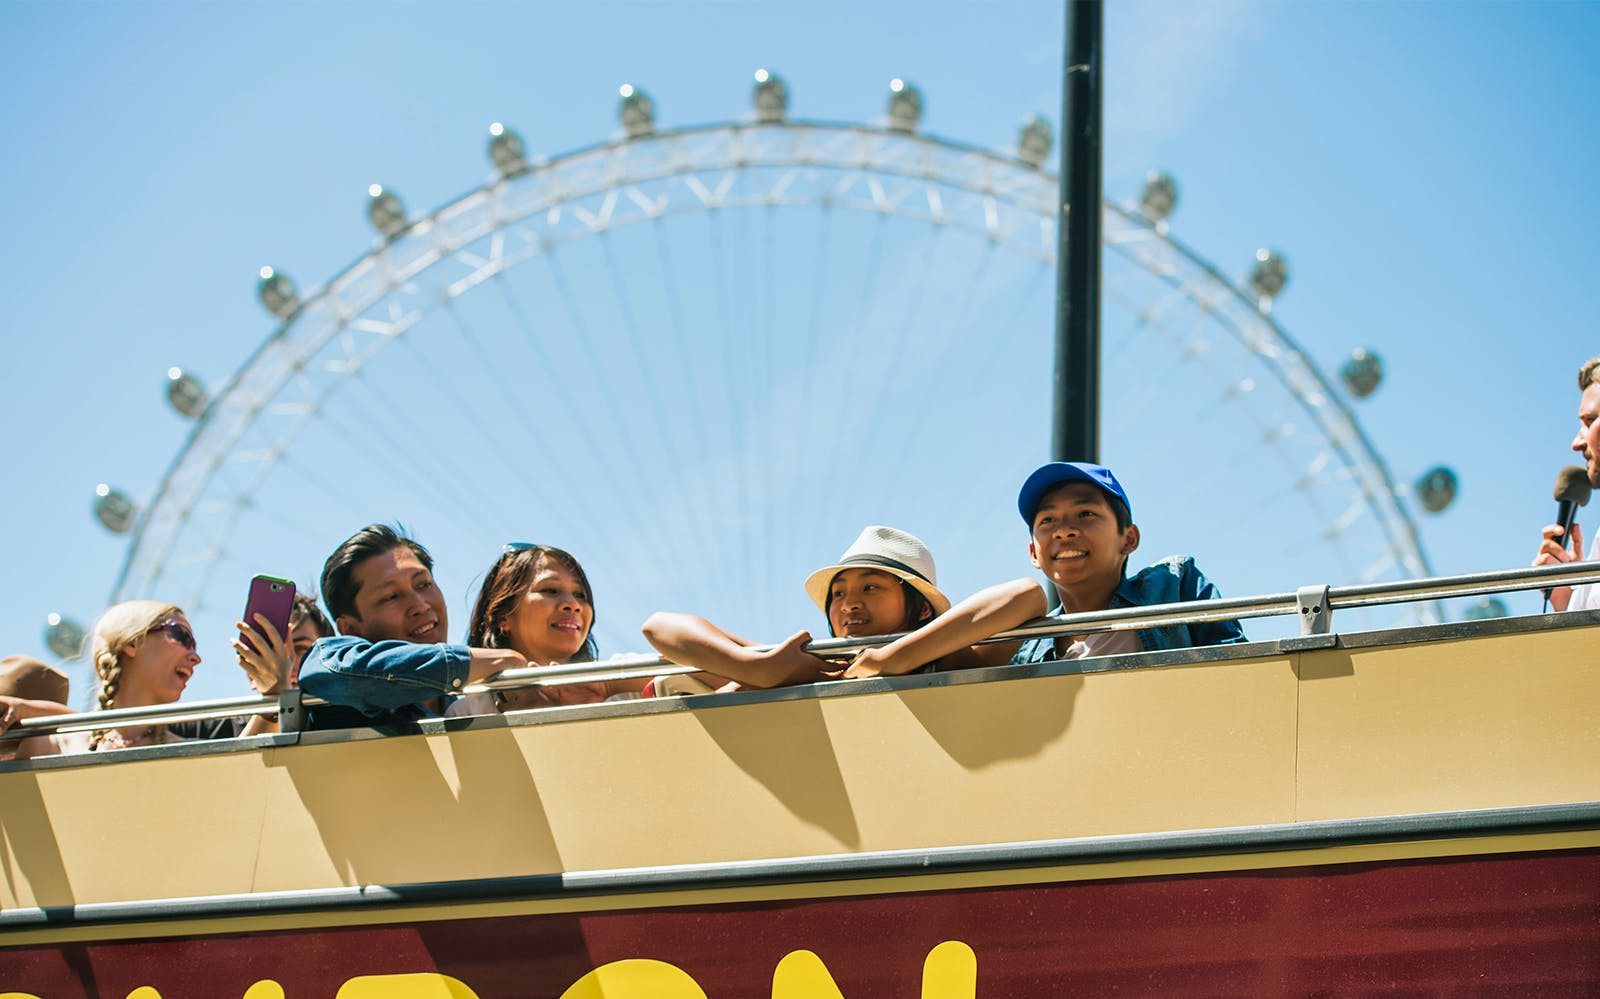 london eye fast track entry + hop-on hop-off classic ticket -2